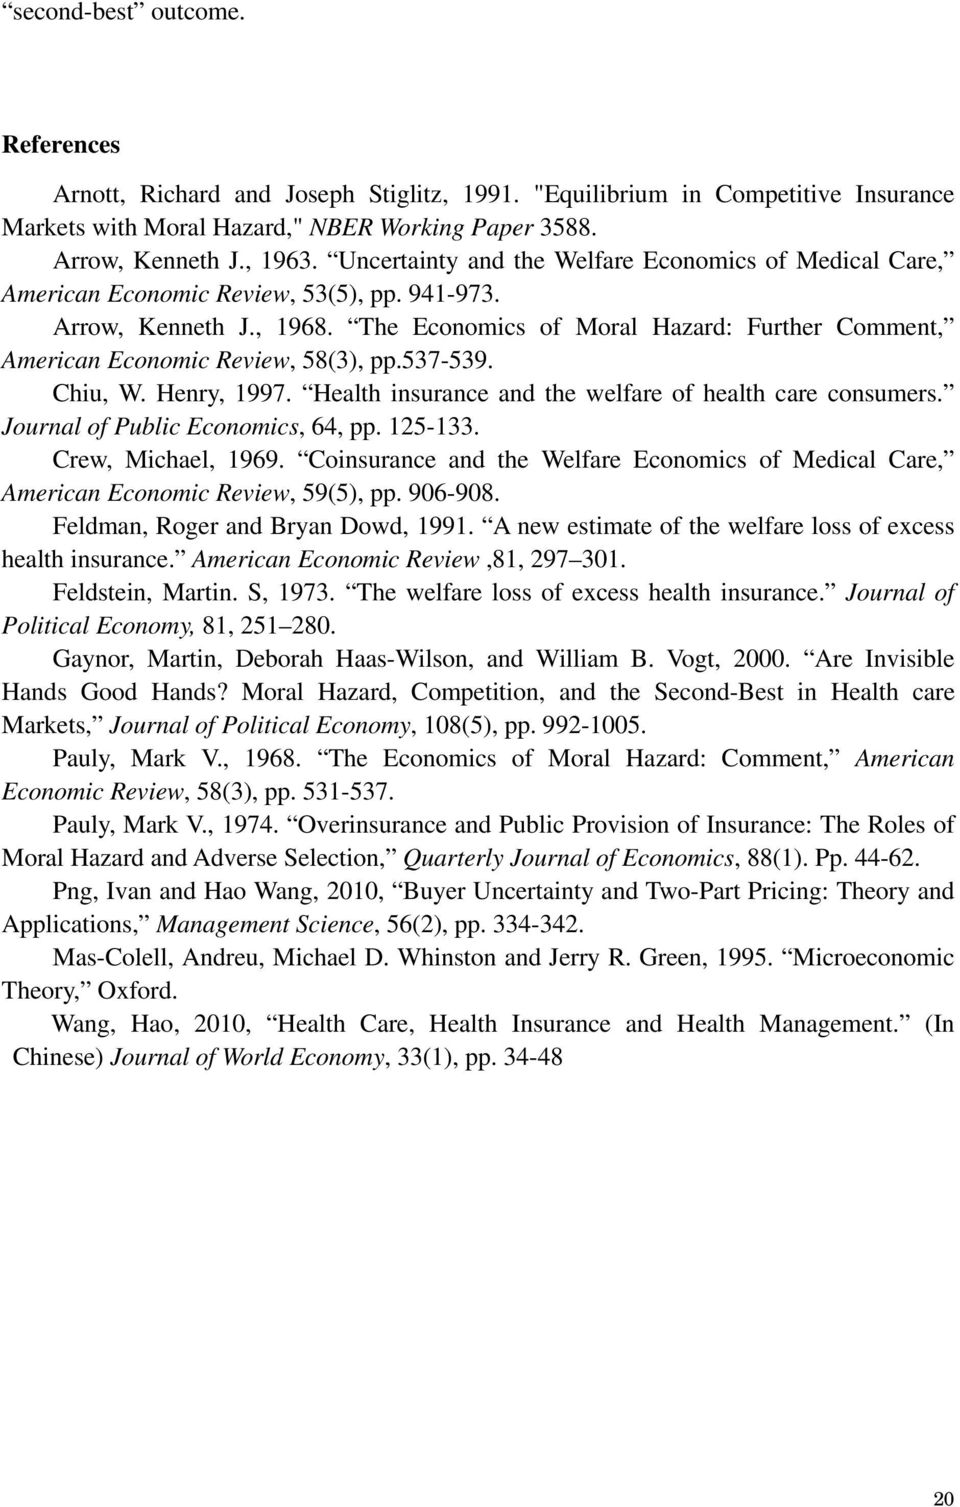 The Economic of Moral Hazard: Further Comment, American Economic Review, 58(3), pp.537-539. Chiu, W. Henry, 1997. Health inurance and the welfare of health care conumer.